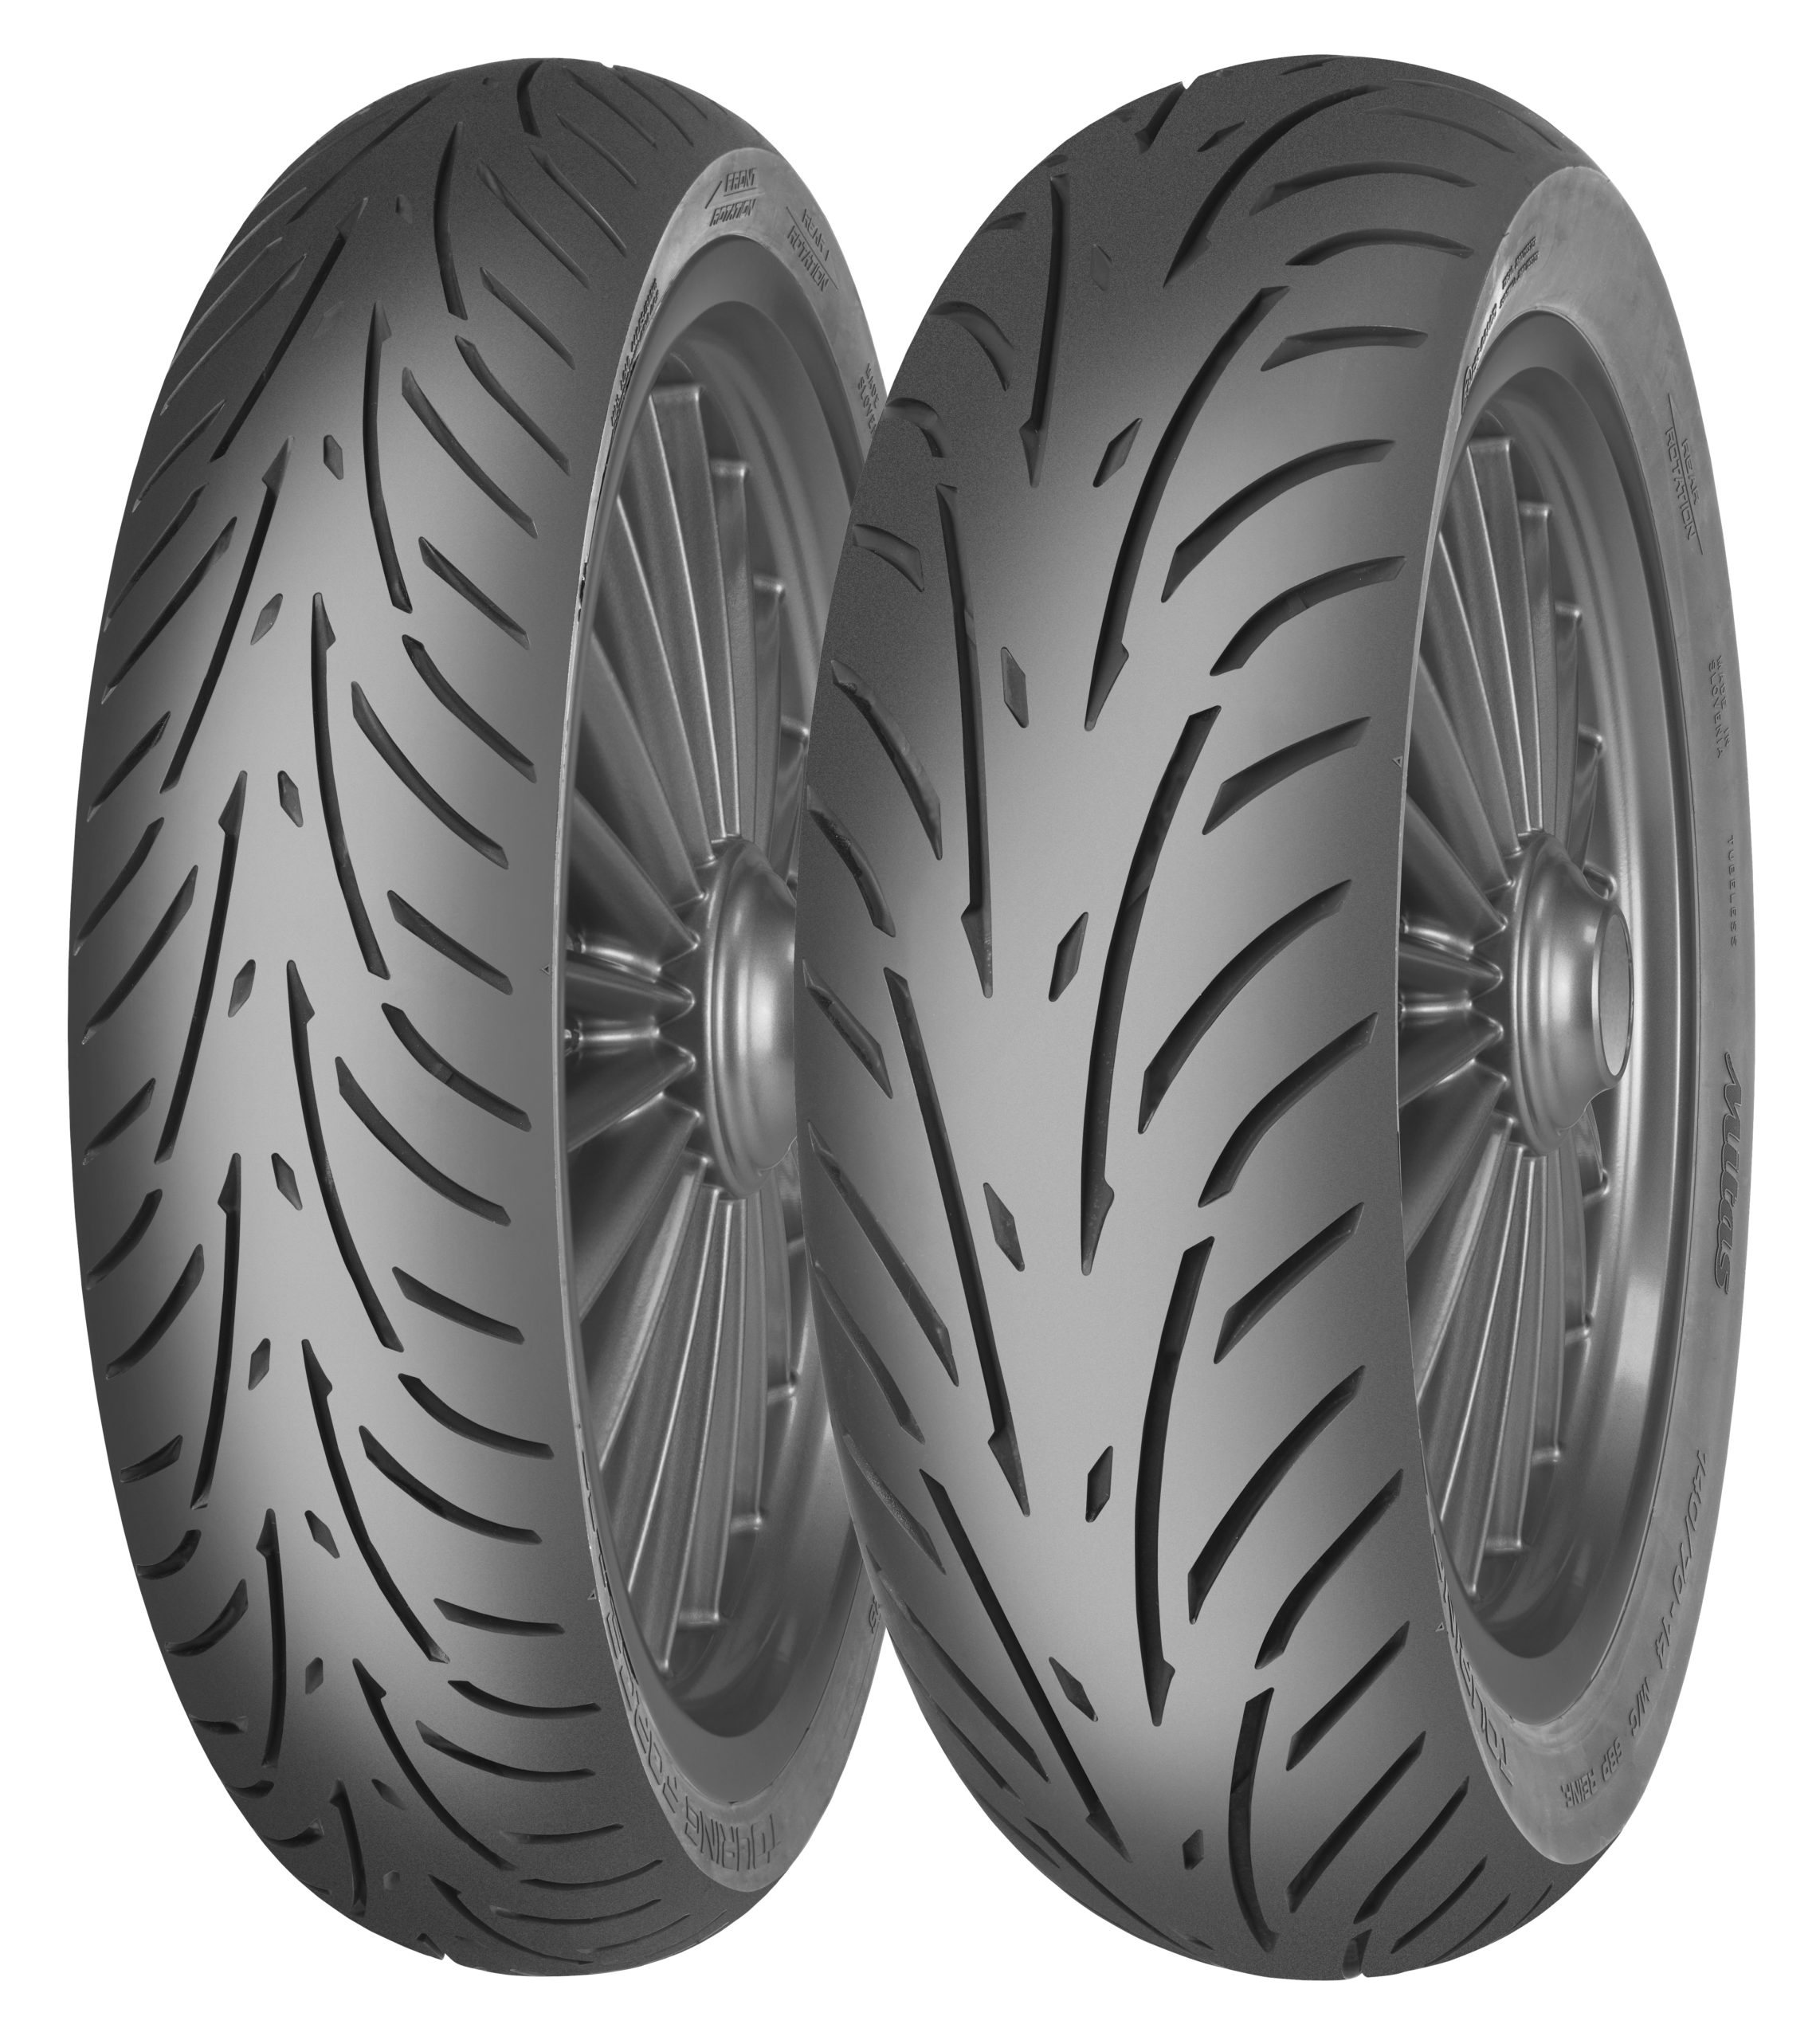 Anvelopa 150/70-14 66S TOURING FORCE-SC R TL MITAS